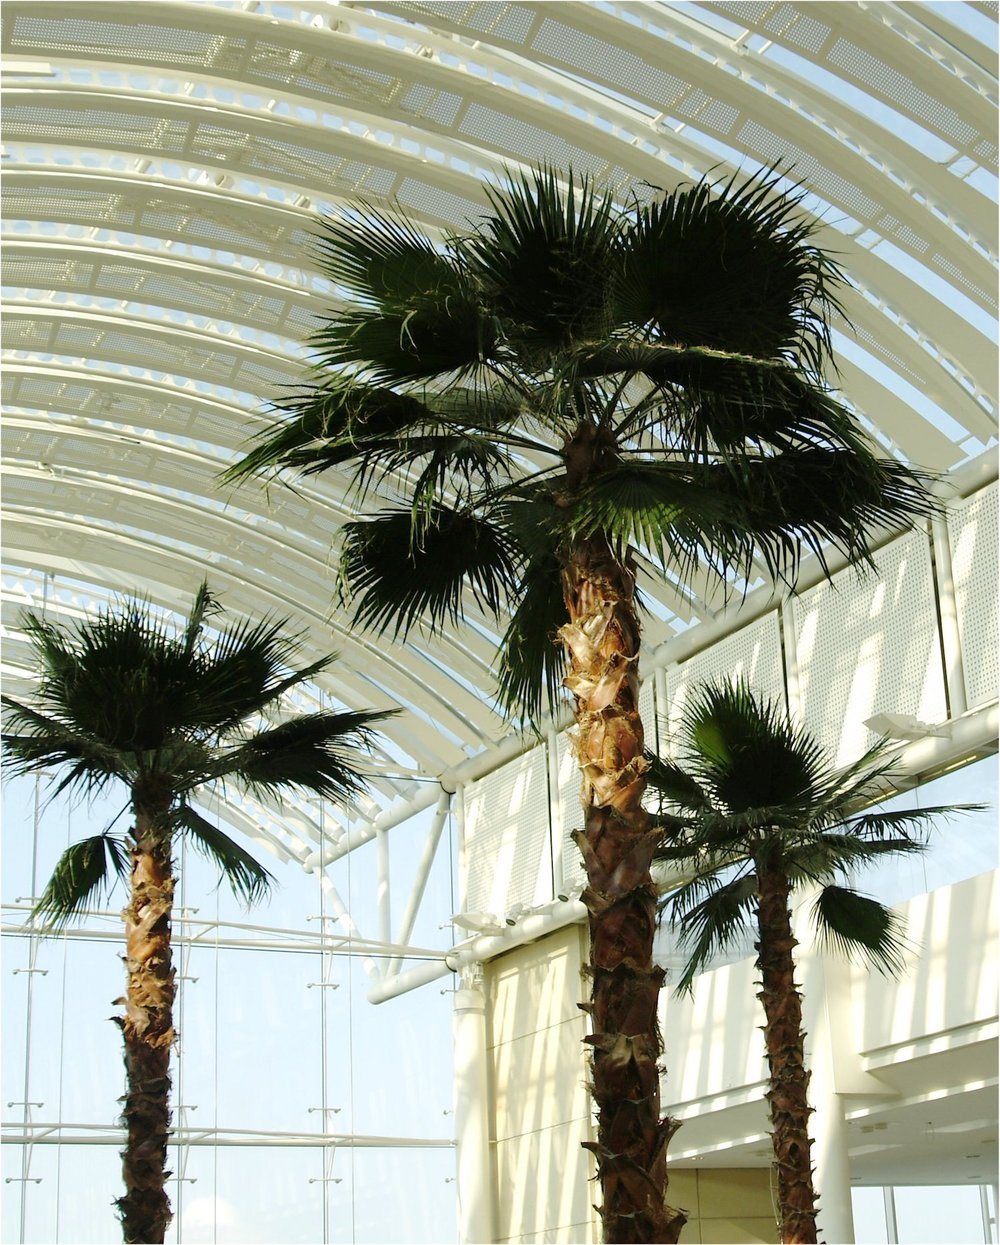 the-mall-cribbs-causeway-plantcare-interior-plants-trees-bristol-image-4